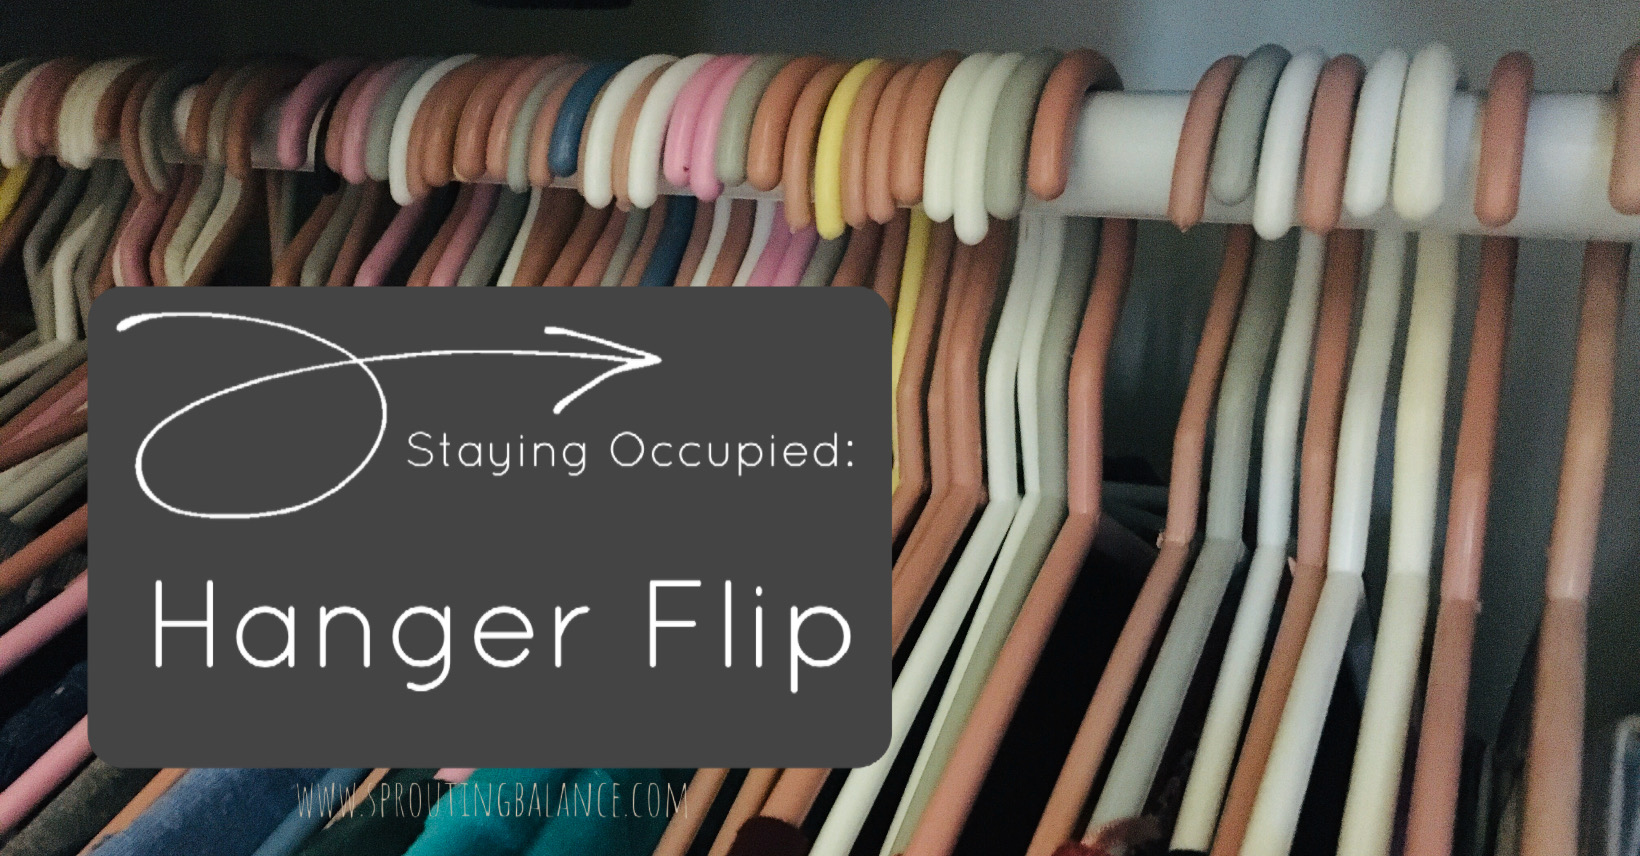 Staying Occupied: Hanger Flip | www.sproutingbalance.com | #stayhome #socialdistancing #bepositive